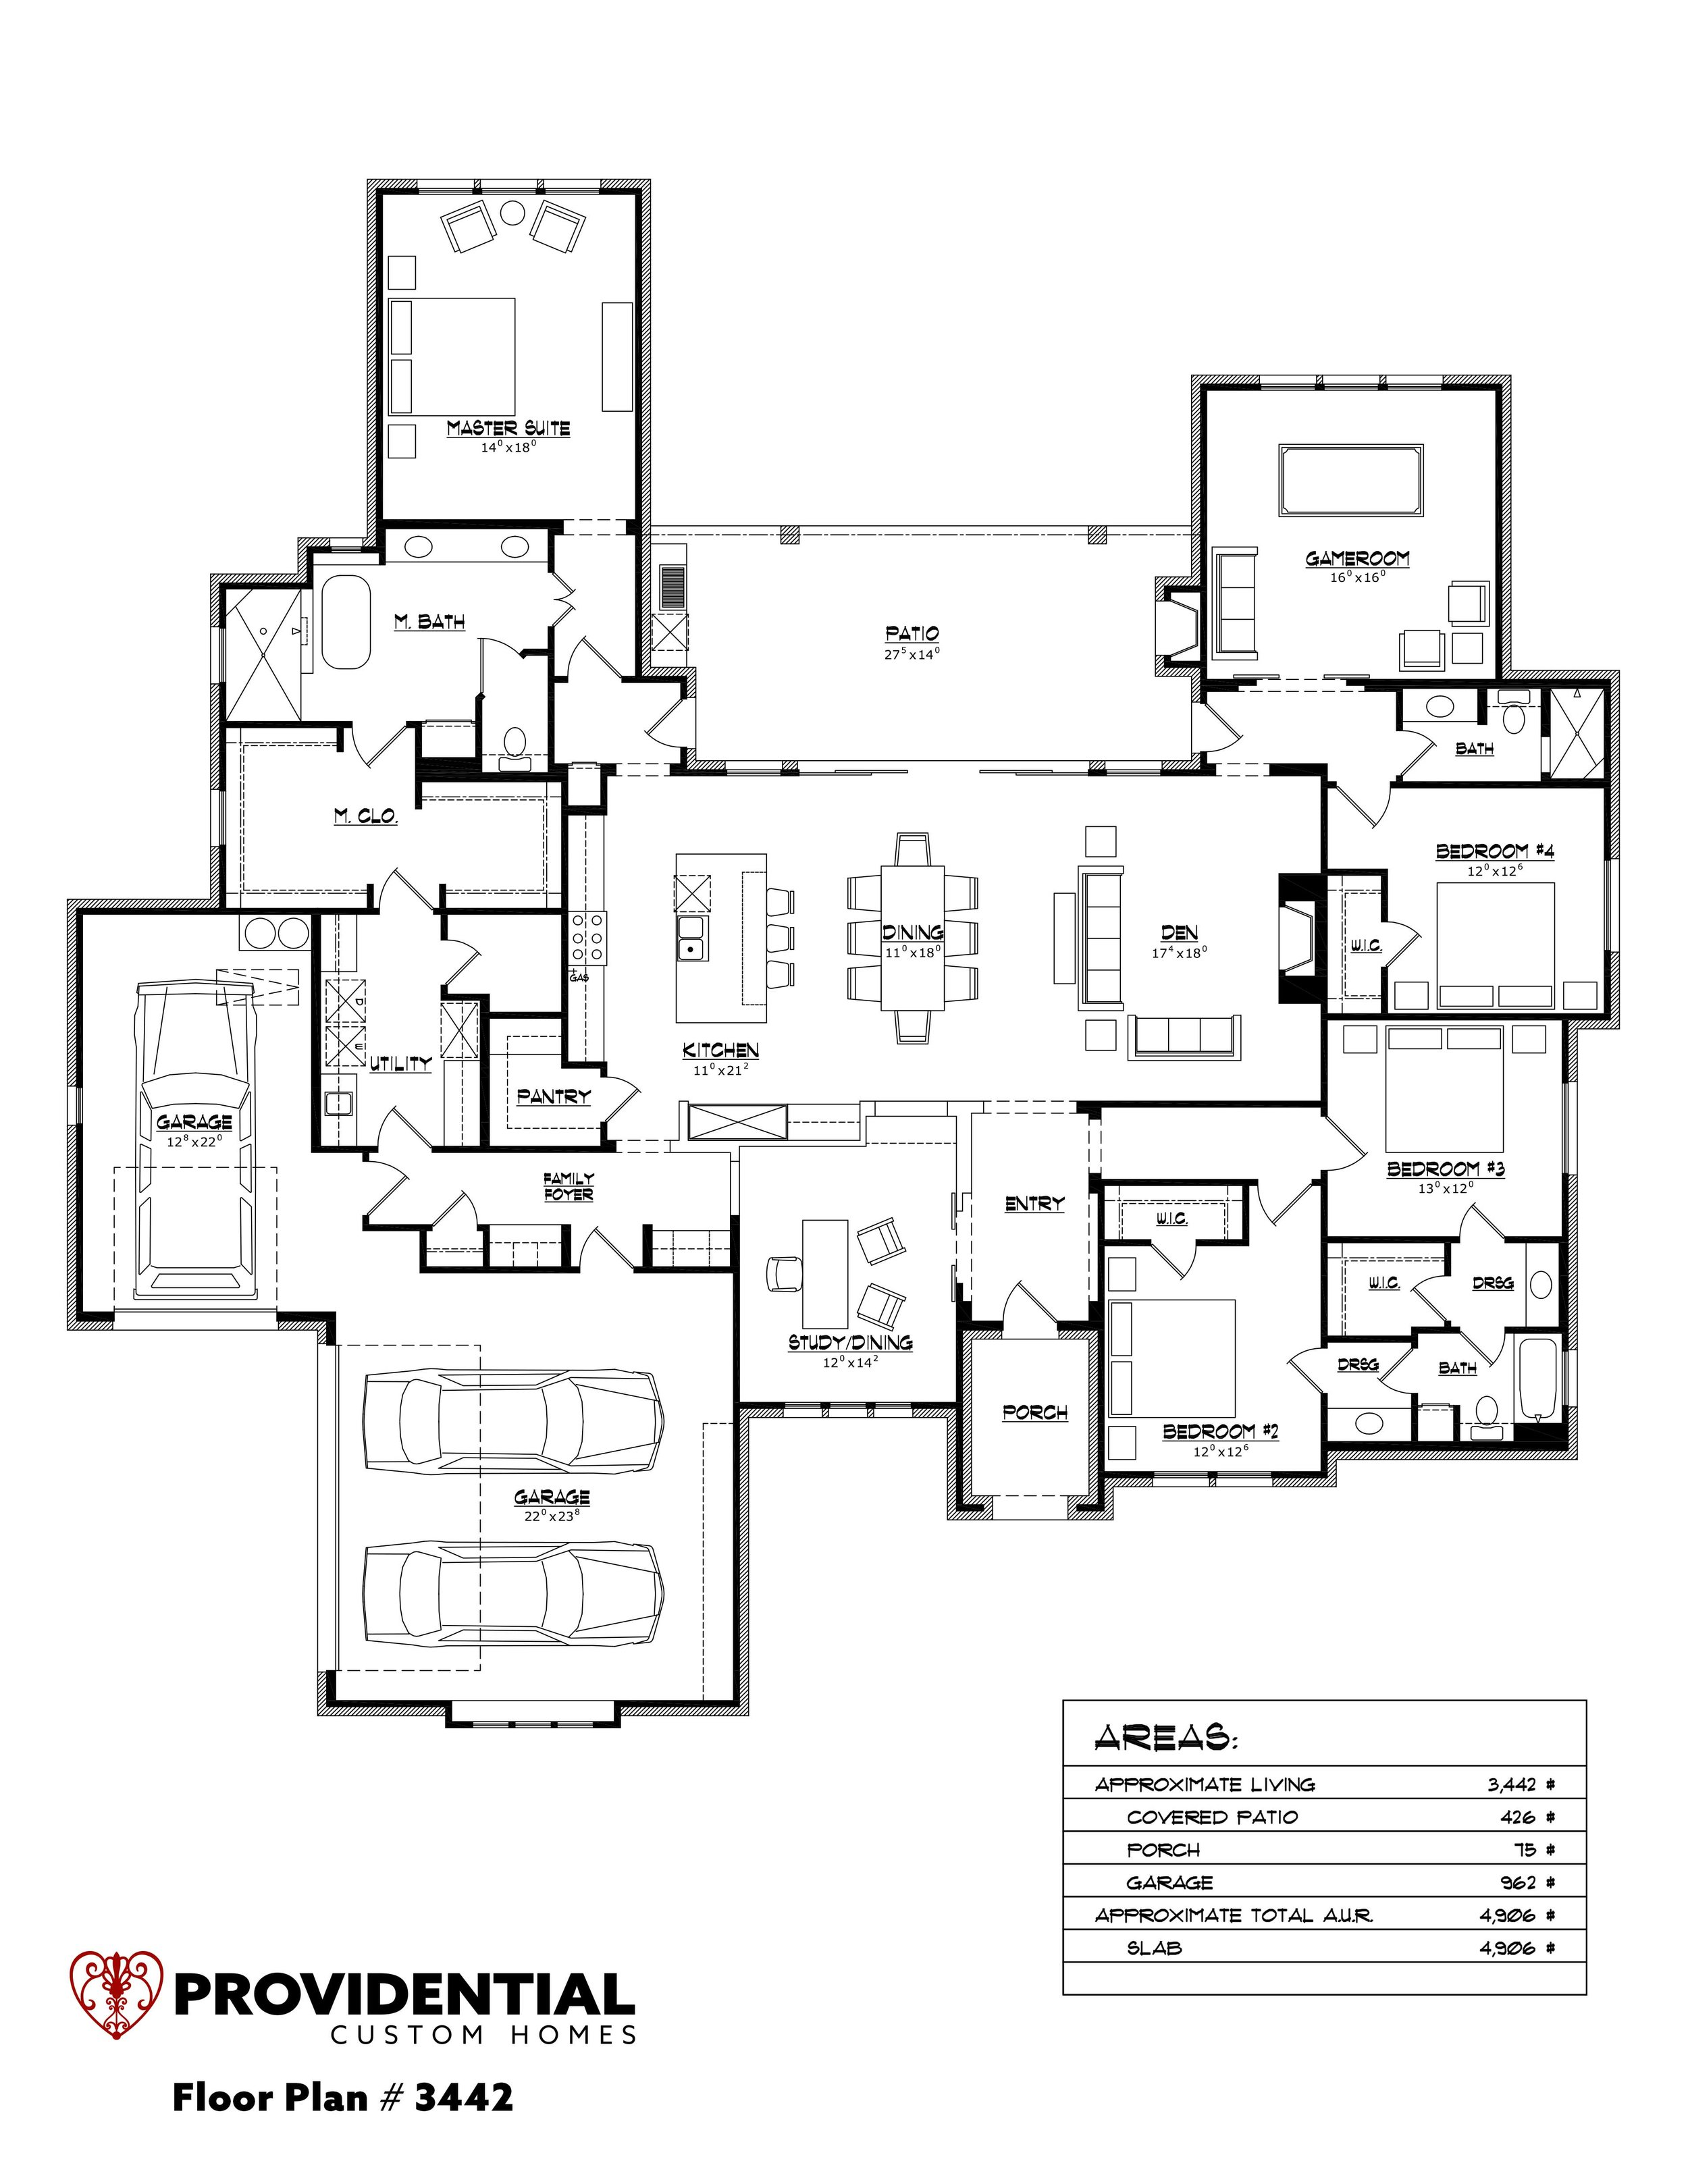 The FLOOR PLAN #3442.jpg